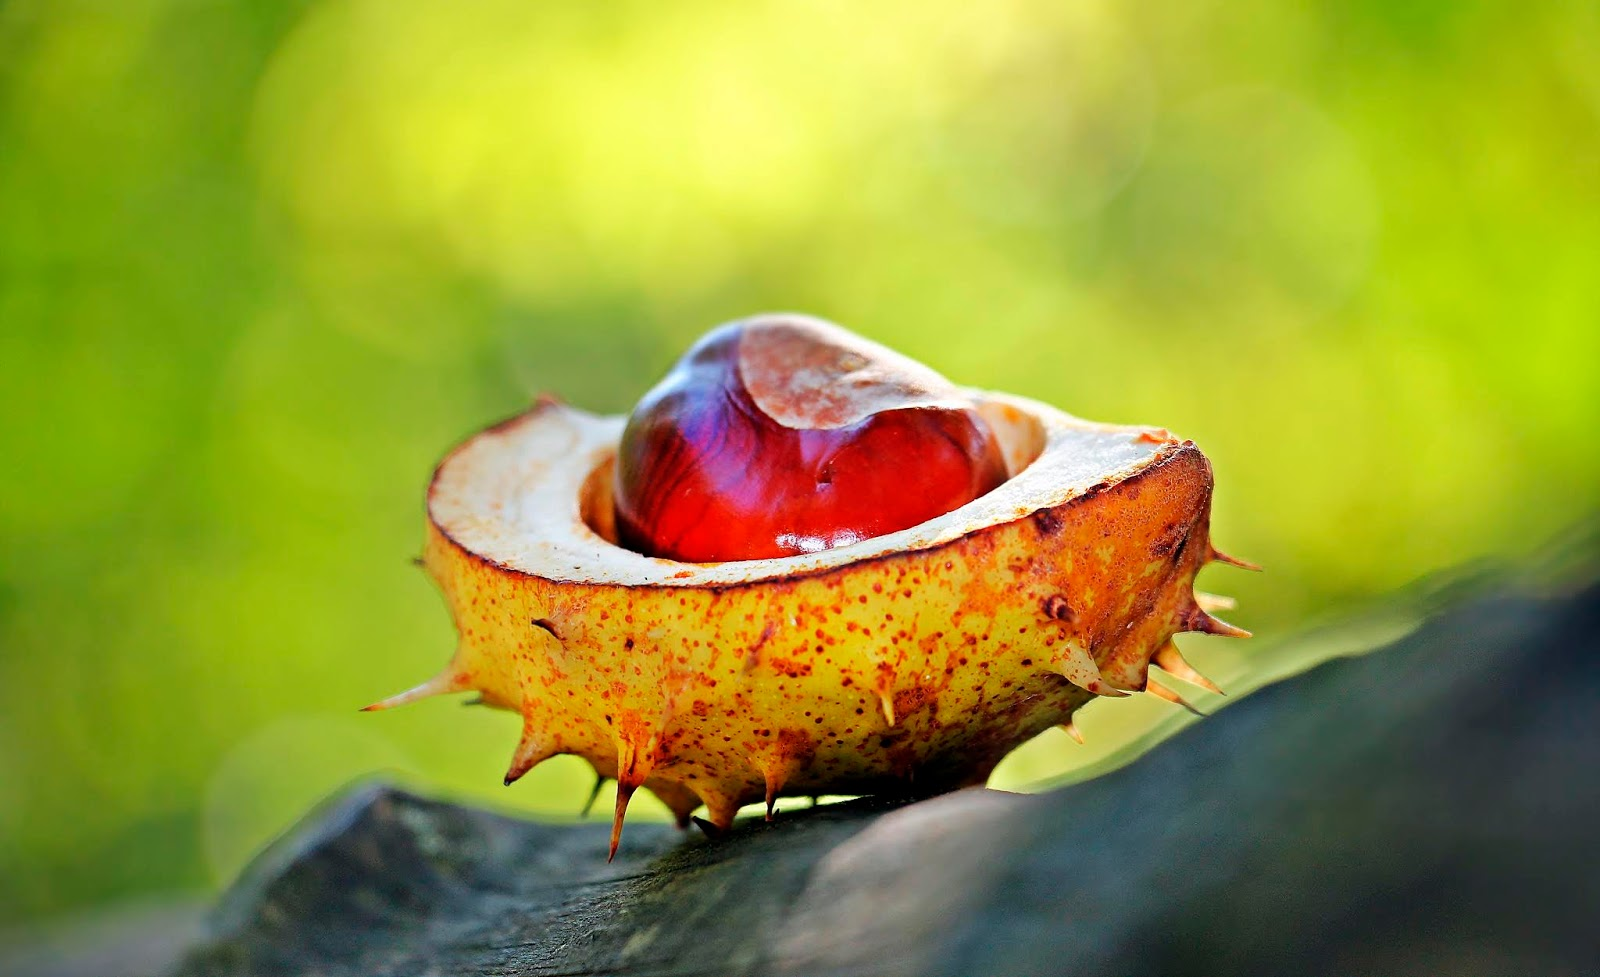 Image showing a conker, the fruit of the horse chestnut tree